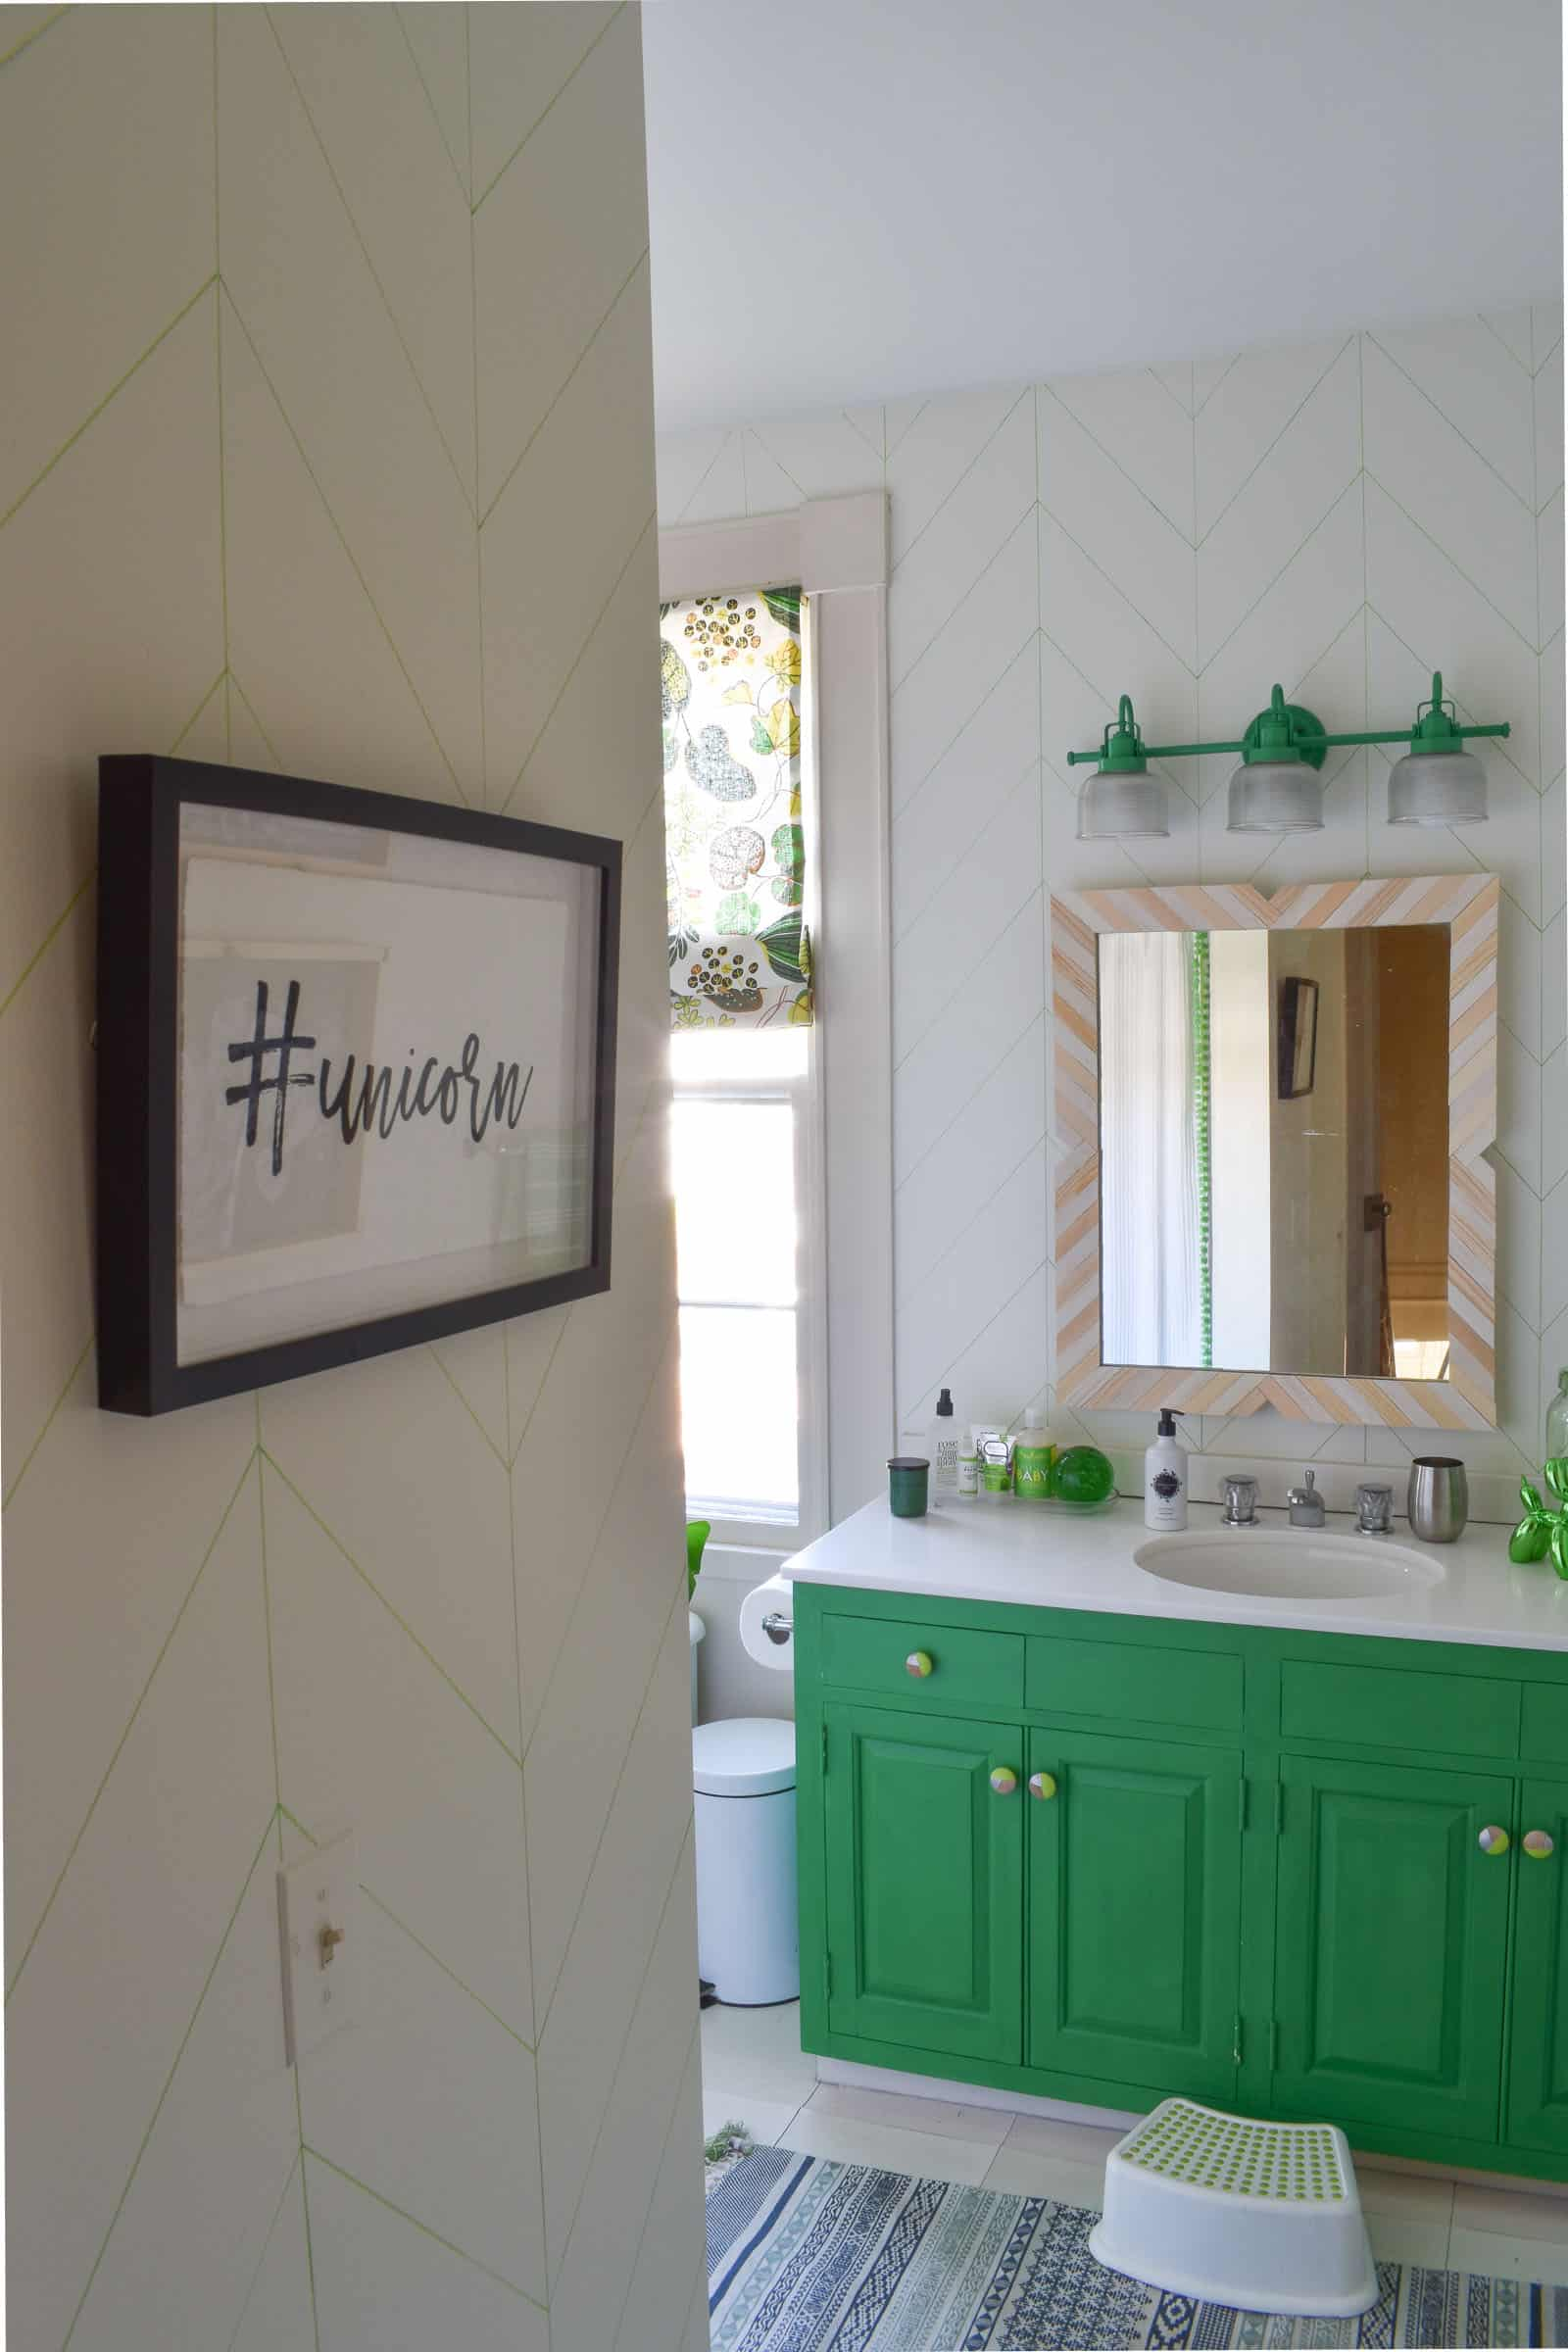 painted green vanity in bathroom